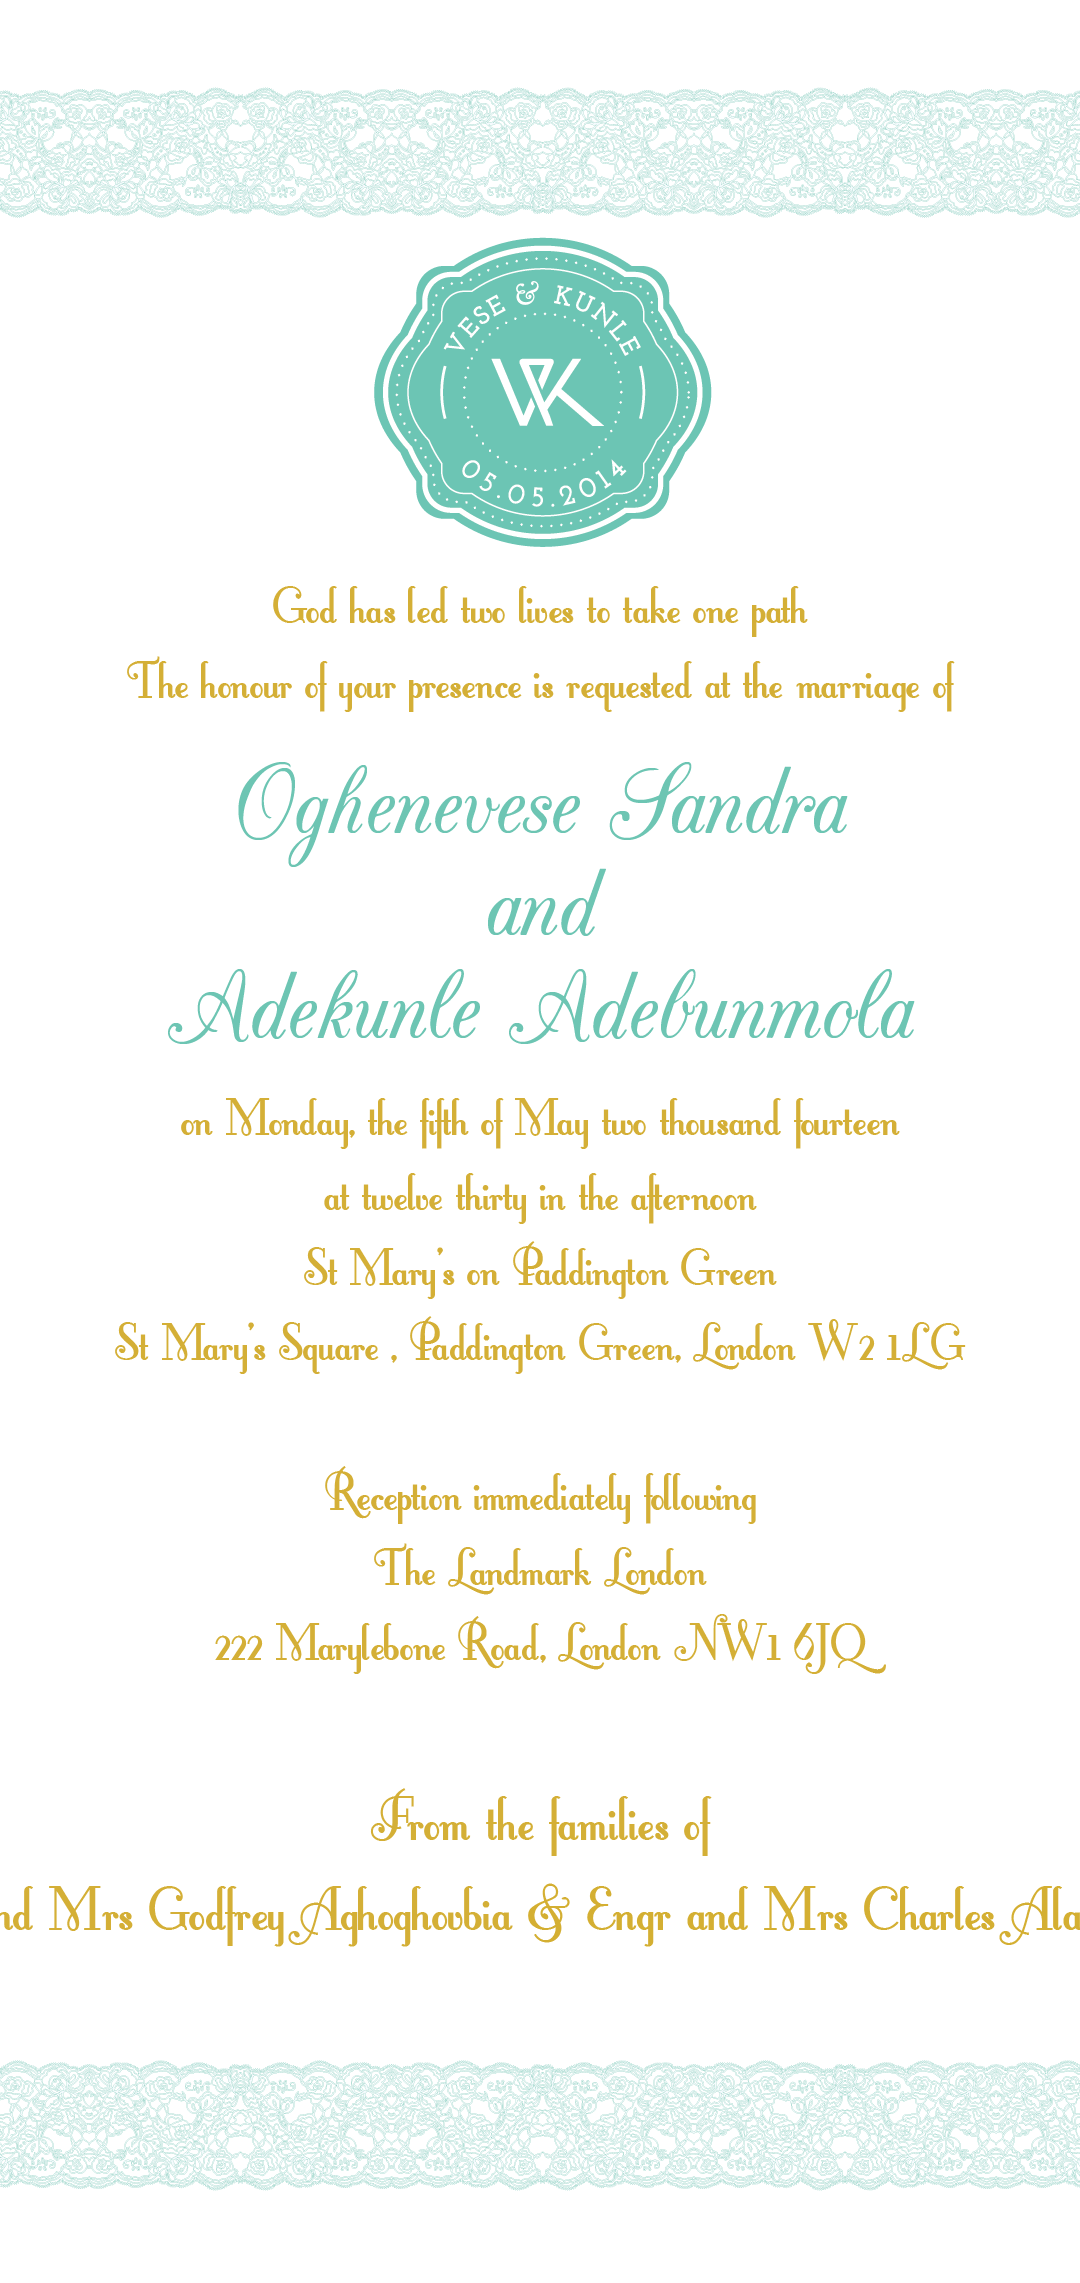 Vese & Kunle's Wedding Invitation